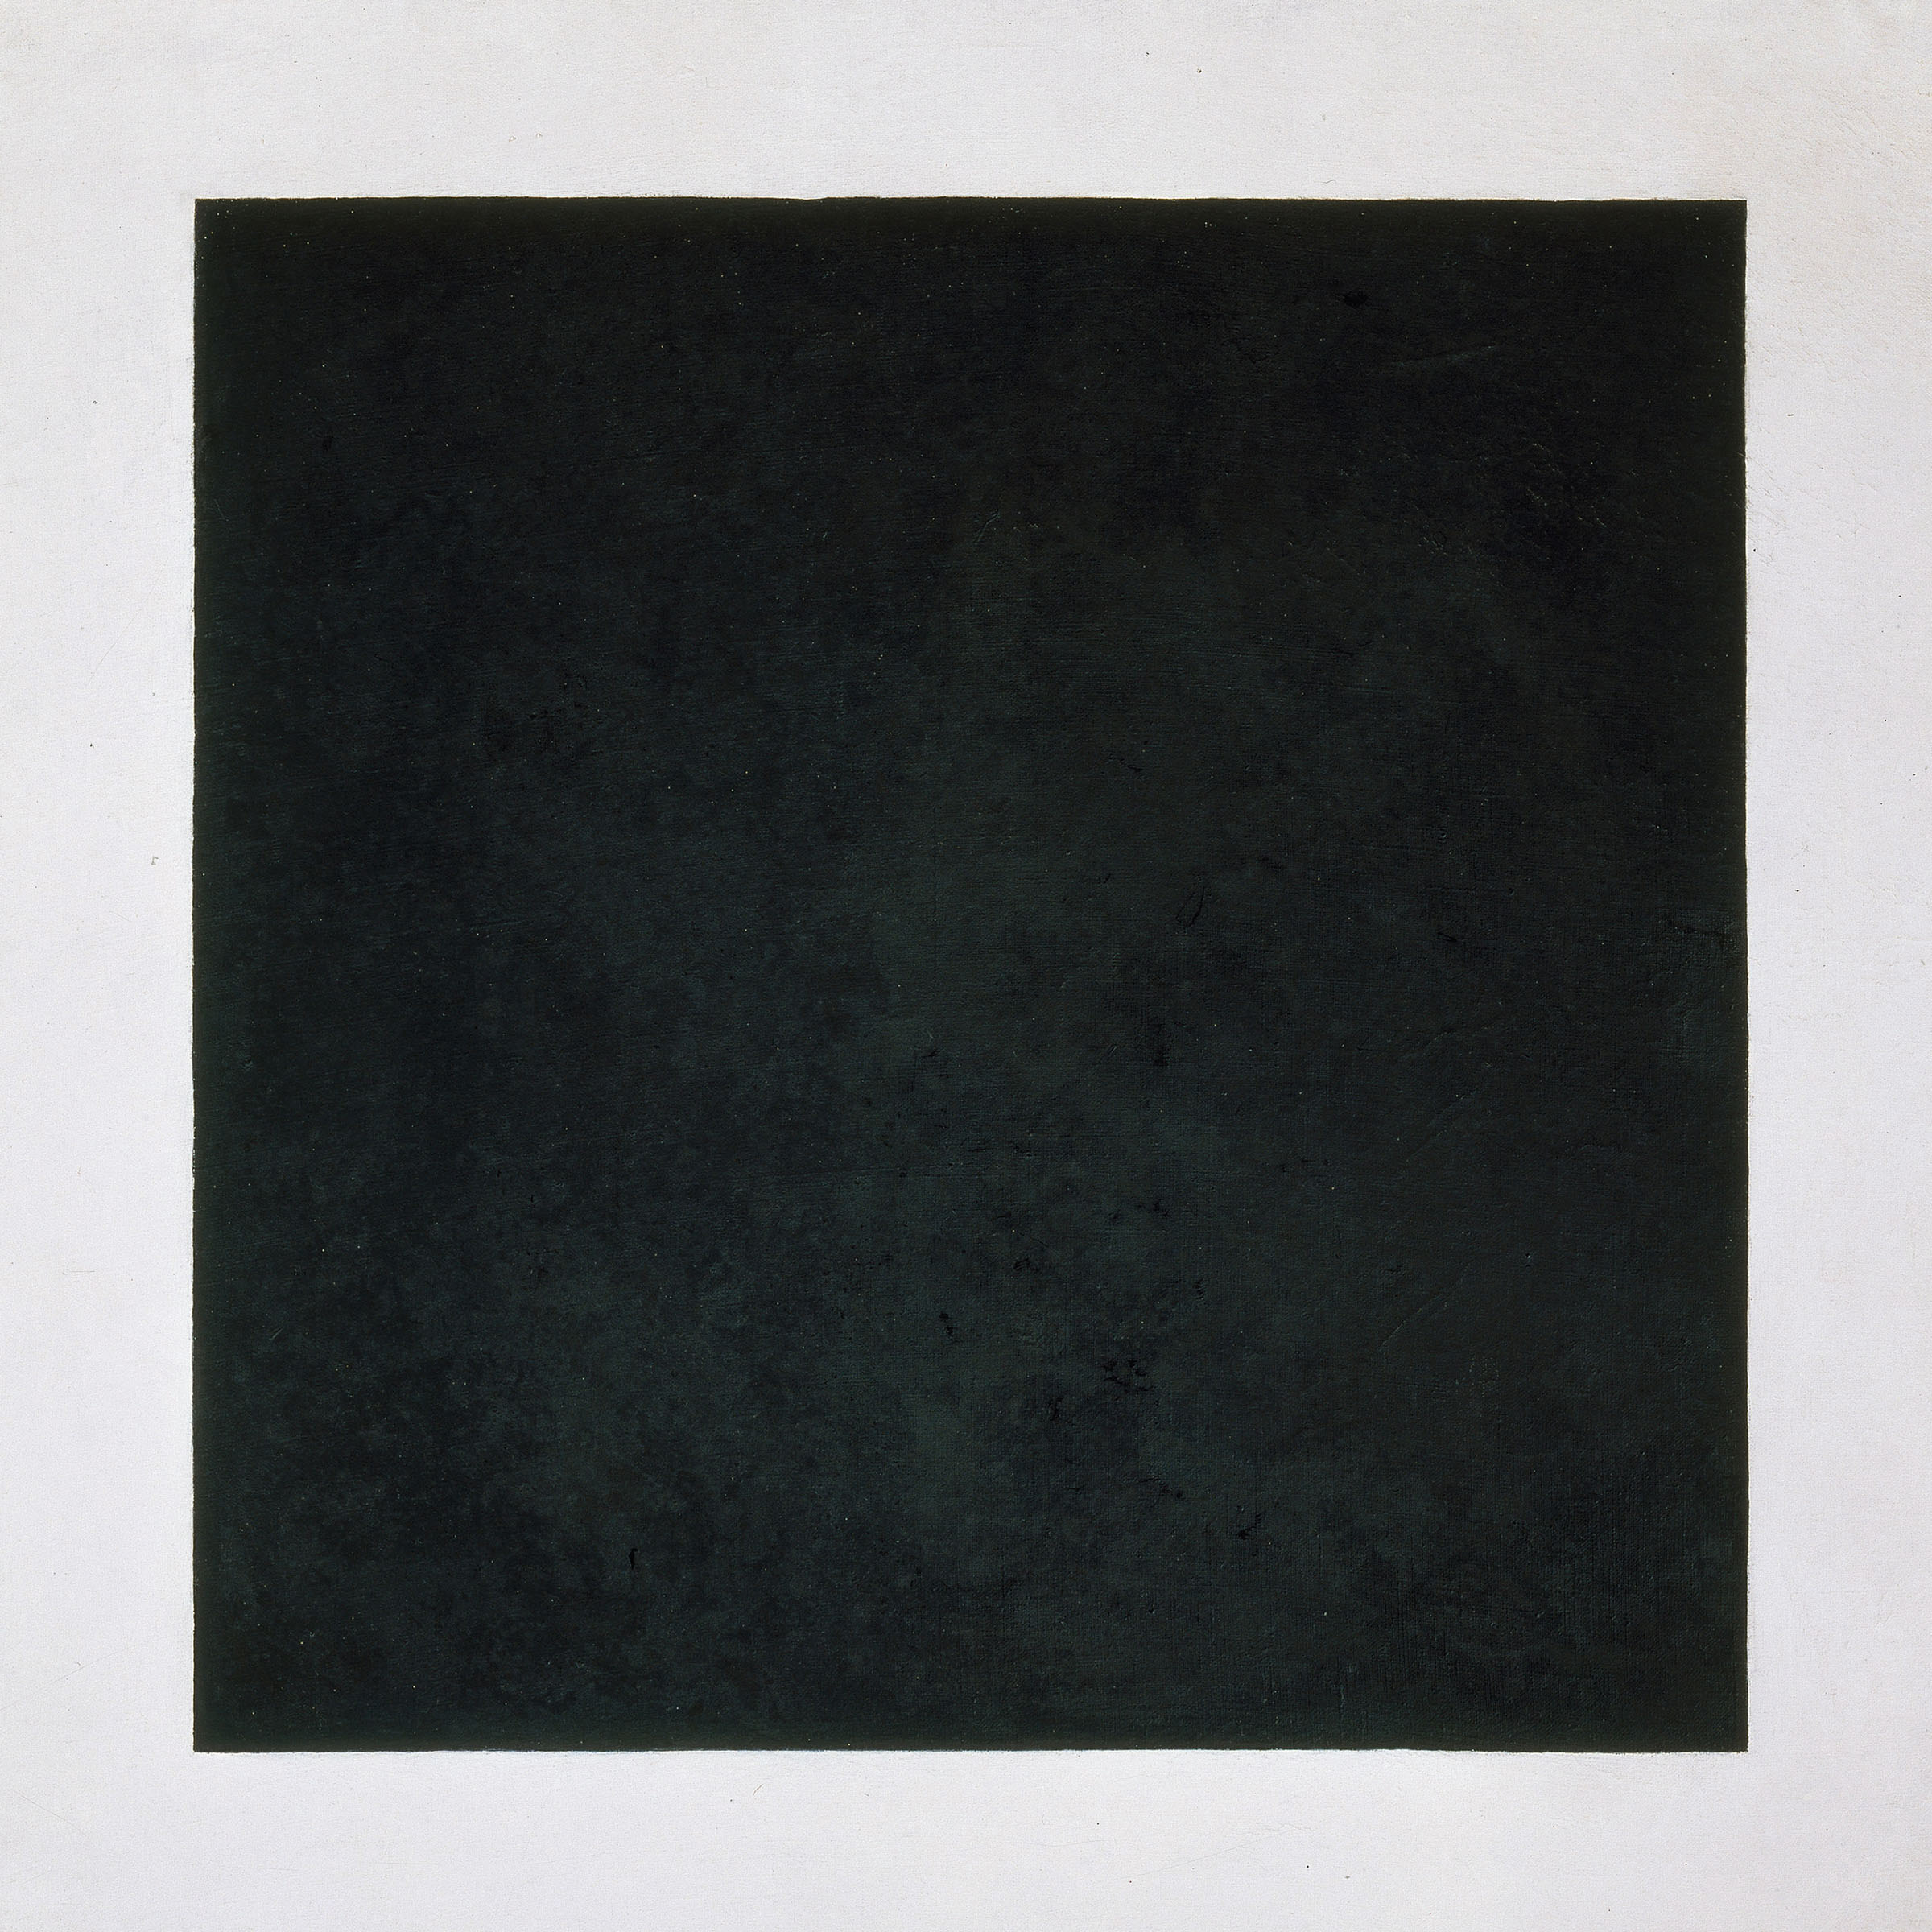 Black Square, 1923, oil on canvas